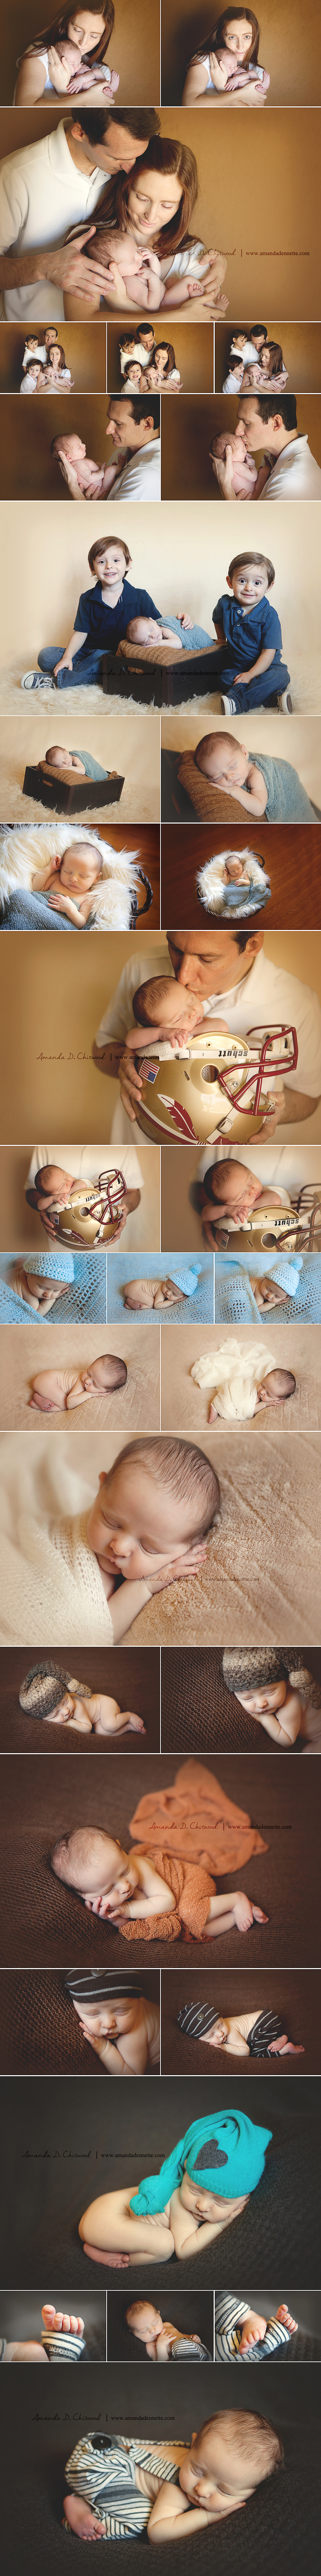 Jacksonville Newborn Photographer